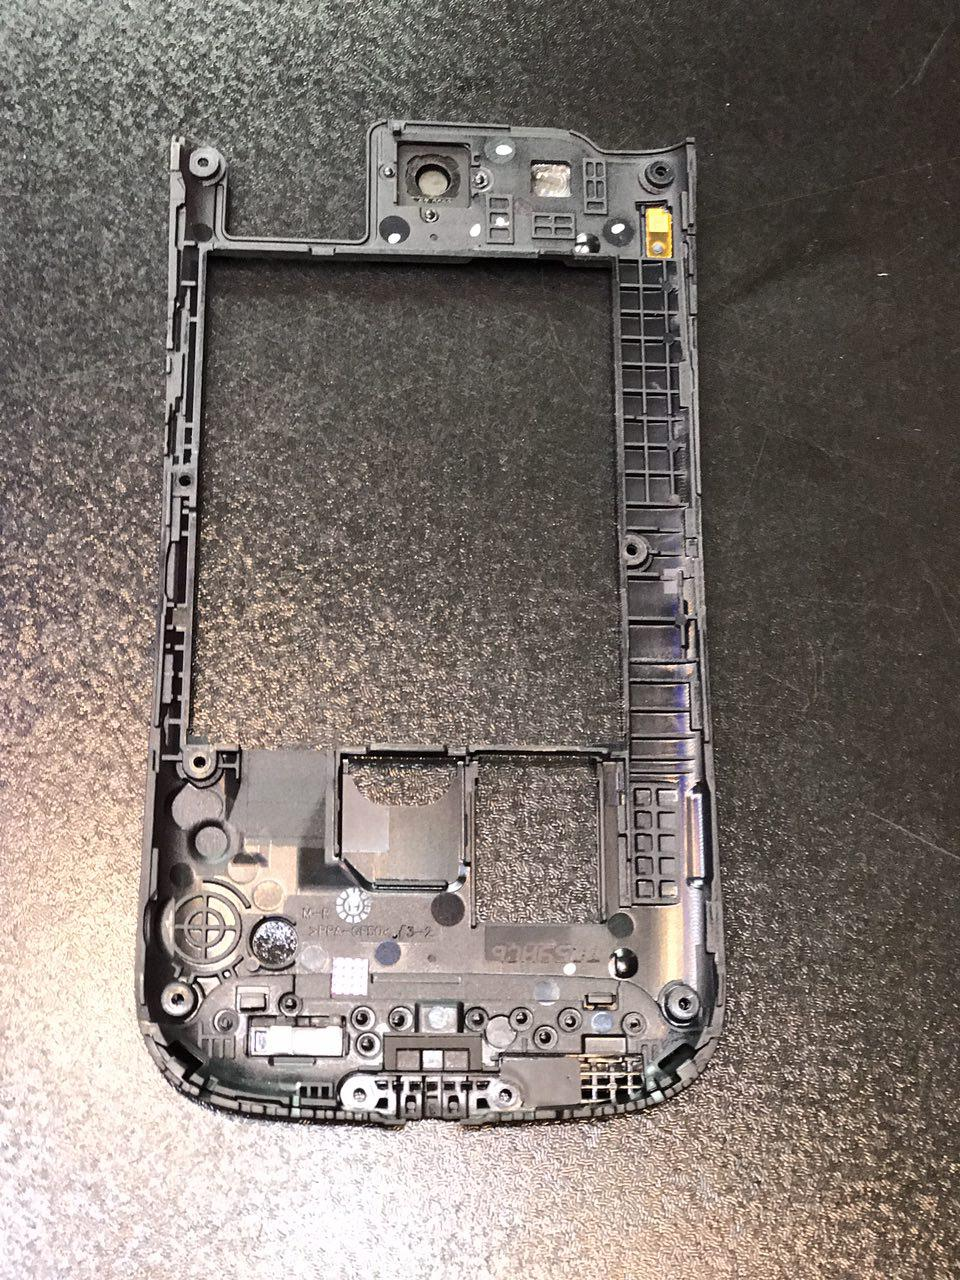 Samsung GT-I9301I Galaxy S3 Neo Middle Housing Cover Mainboard Lens Rear Camera Module